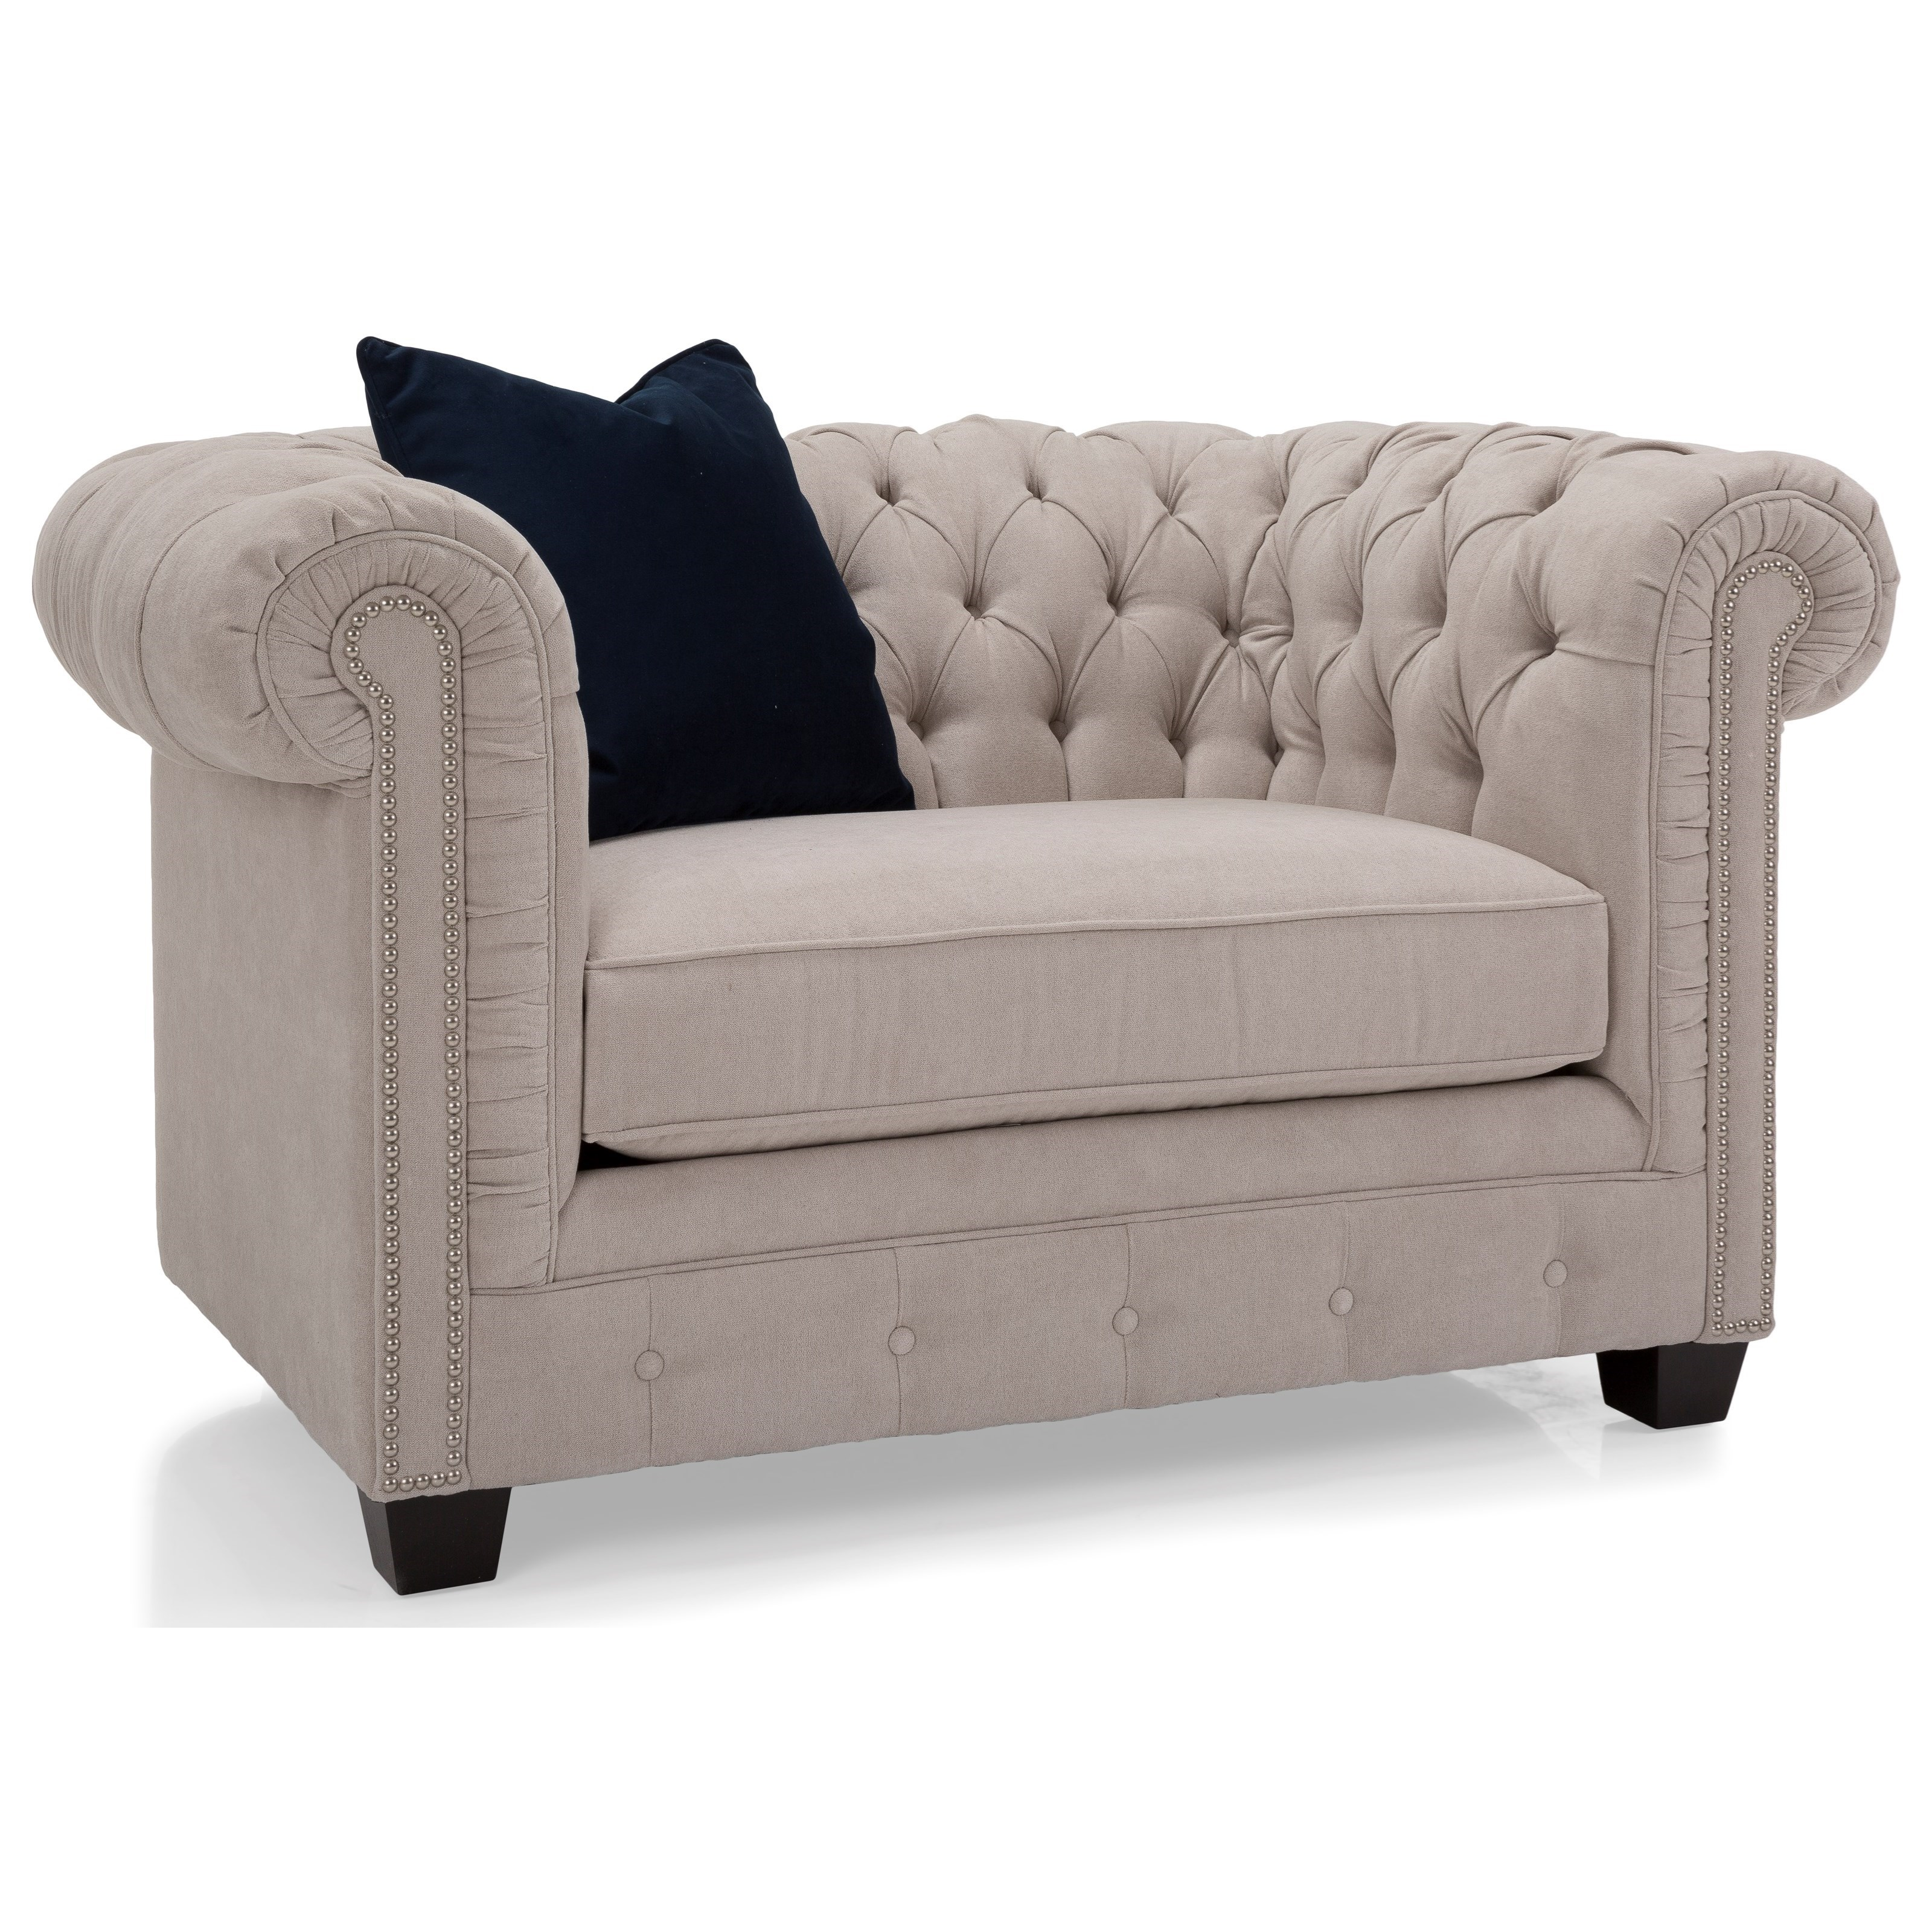 2230 Series Chair and a Half by Decor-Rest at Wayside Furniture